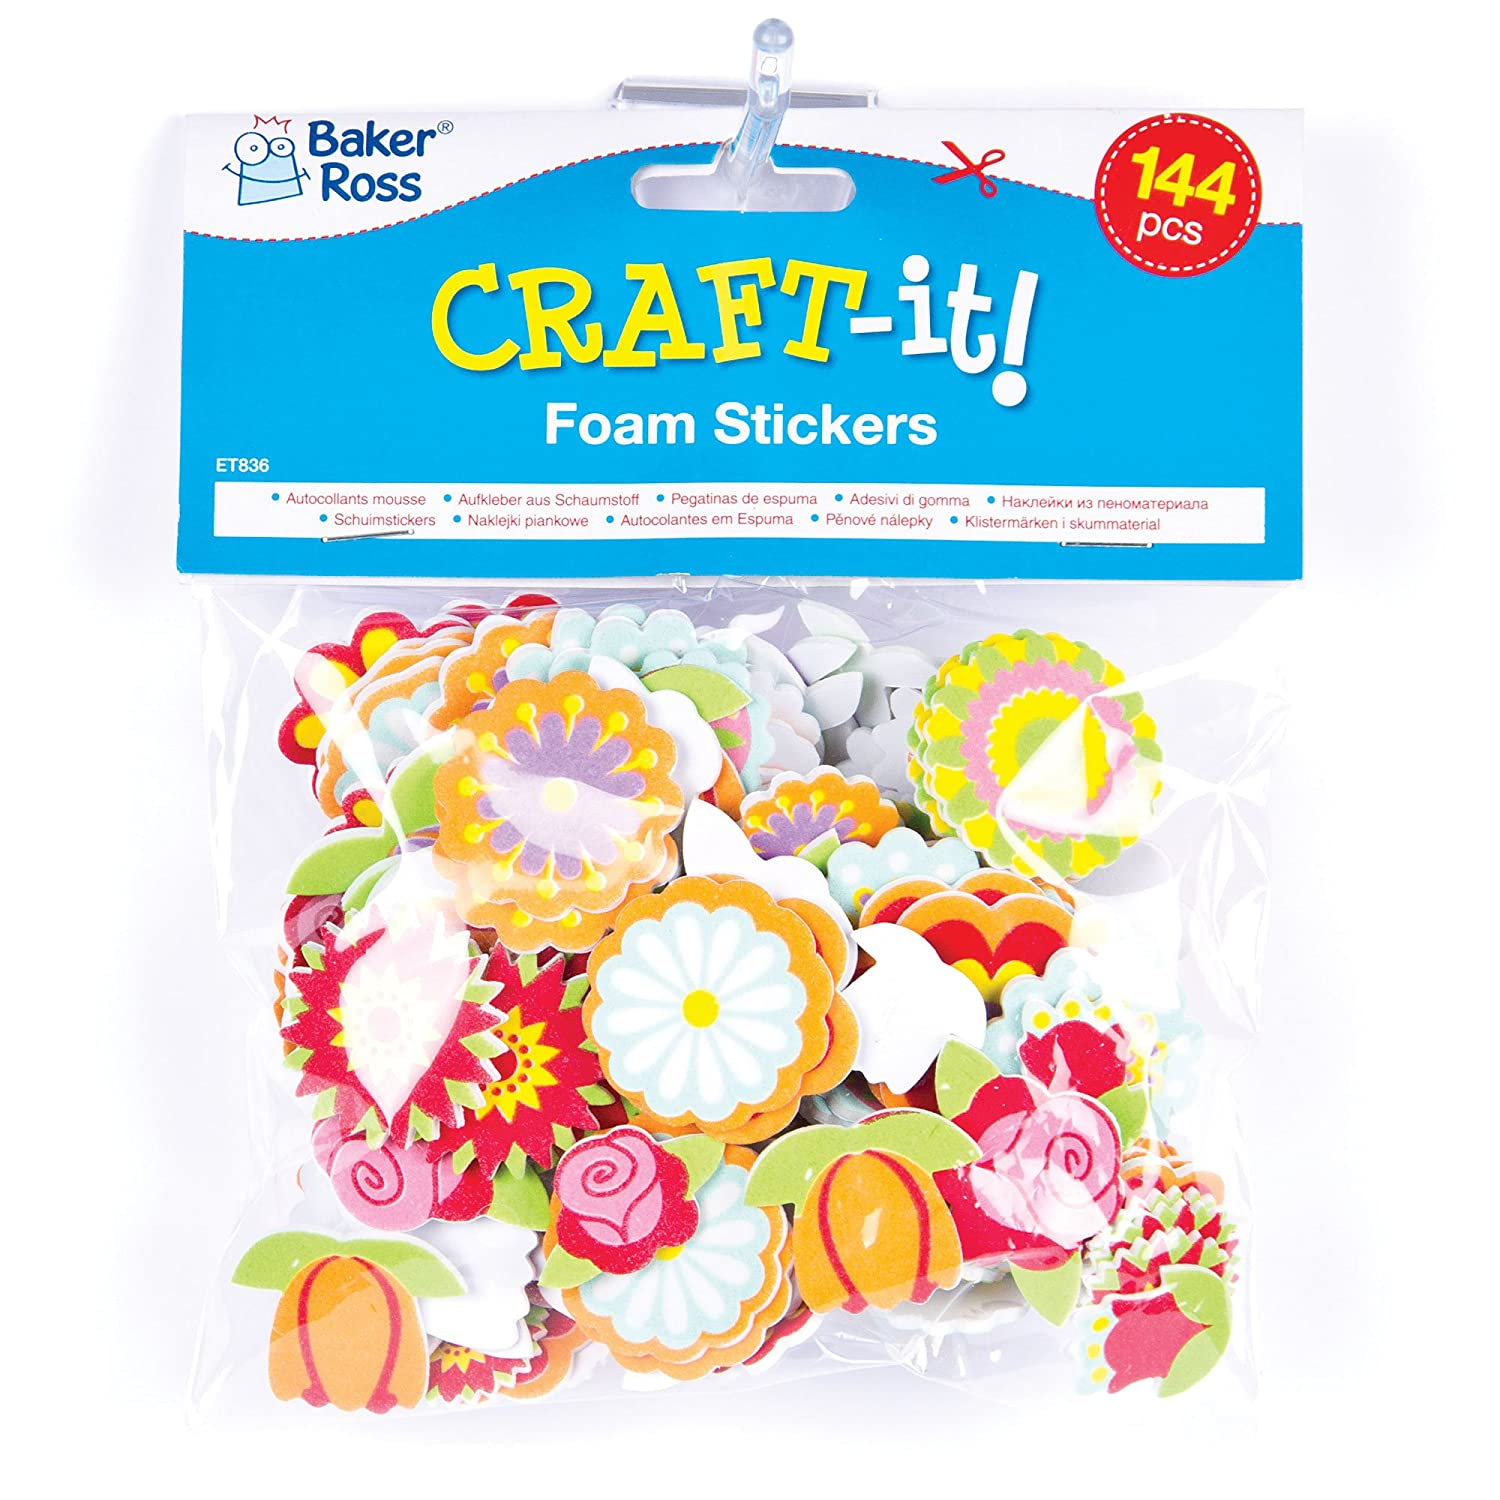 f38ce803df Baker Ross ET836 Flower Foam Stickers (Pack of 144), Assorted:  Amazon.co.uk: Toys & Games